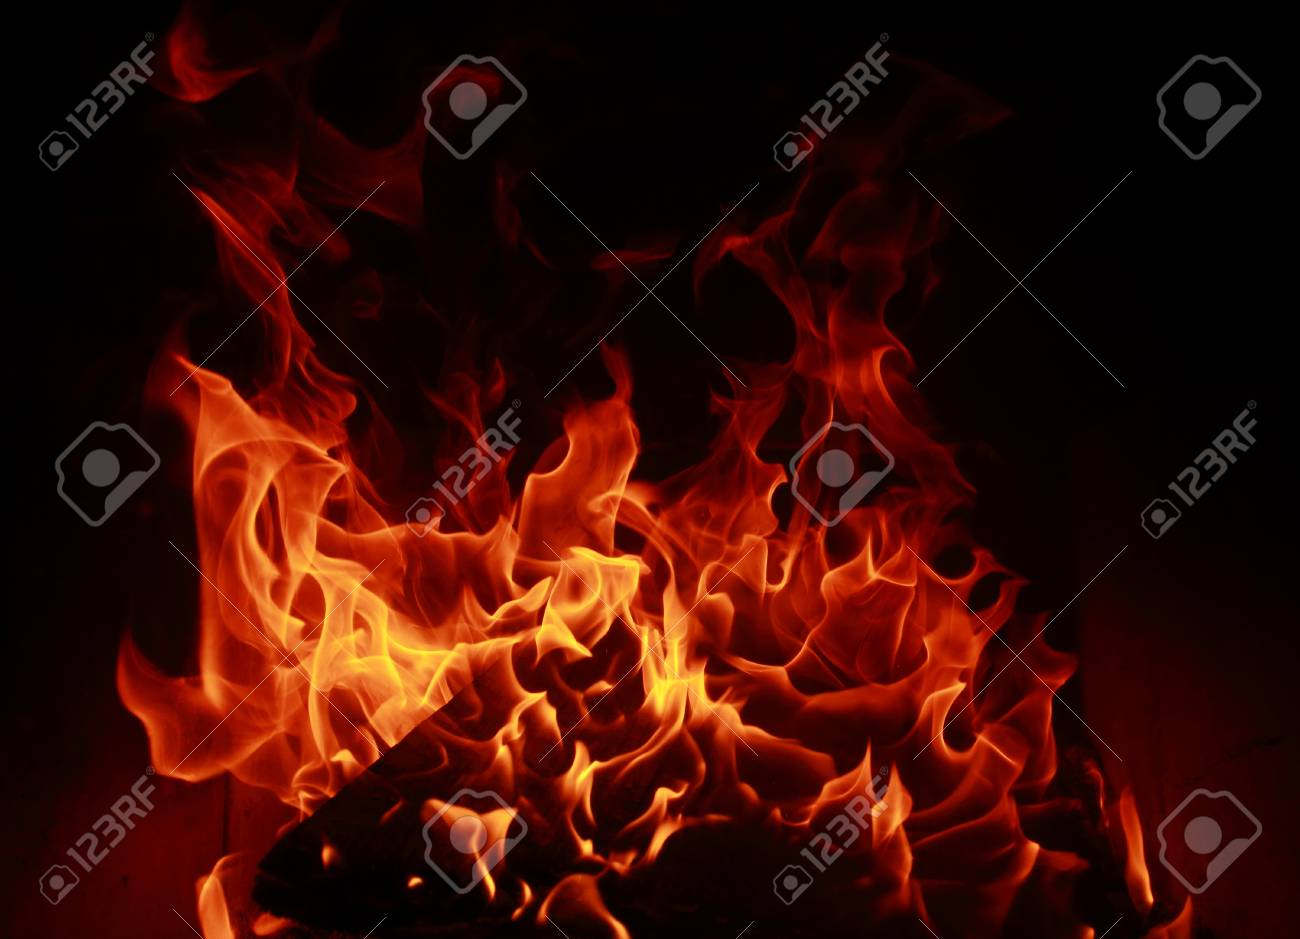 Fire flames with reflection on dark background Stock Photo - 22807428